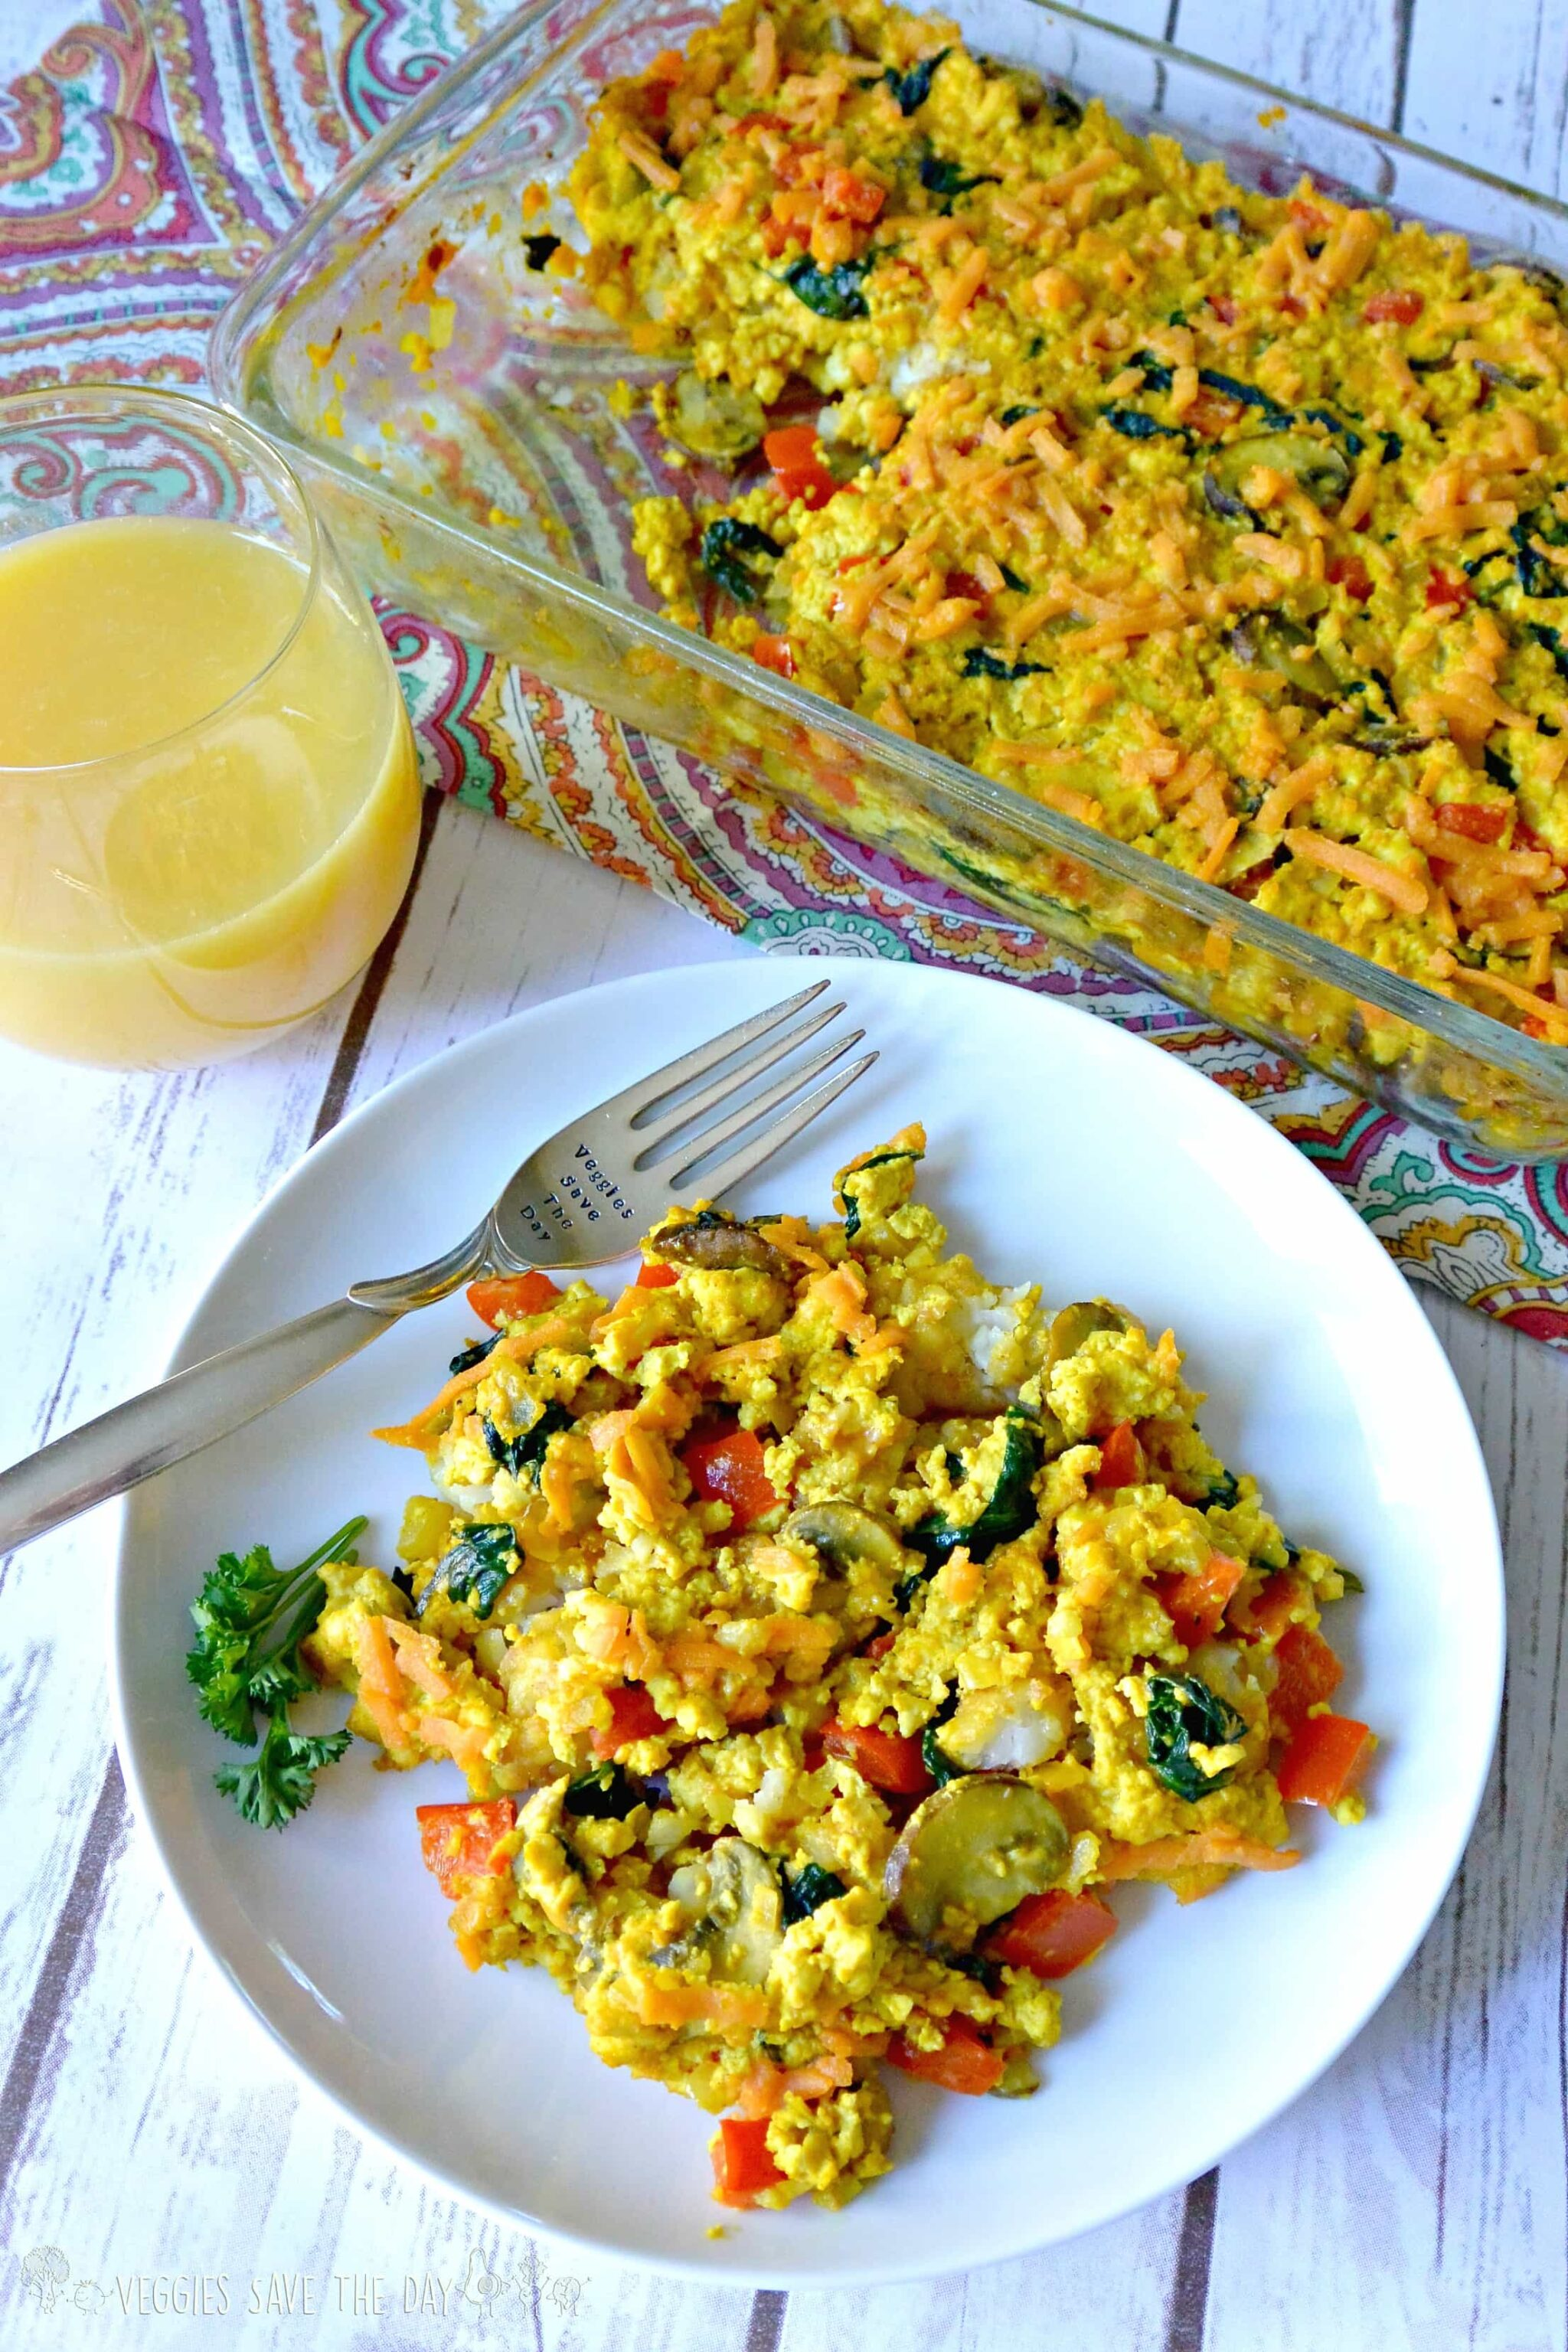 49 Savory Vegan Breakfast Recipes: Tofu Scramble Tator Tot Casserole